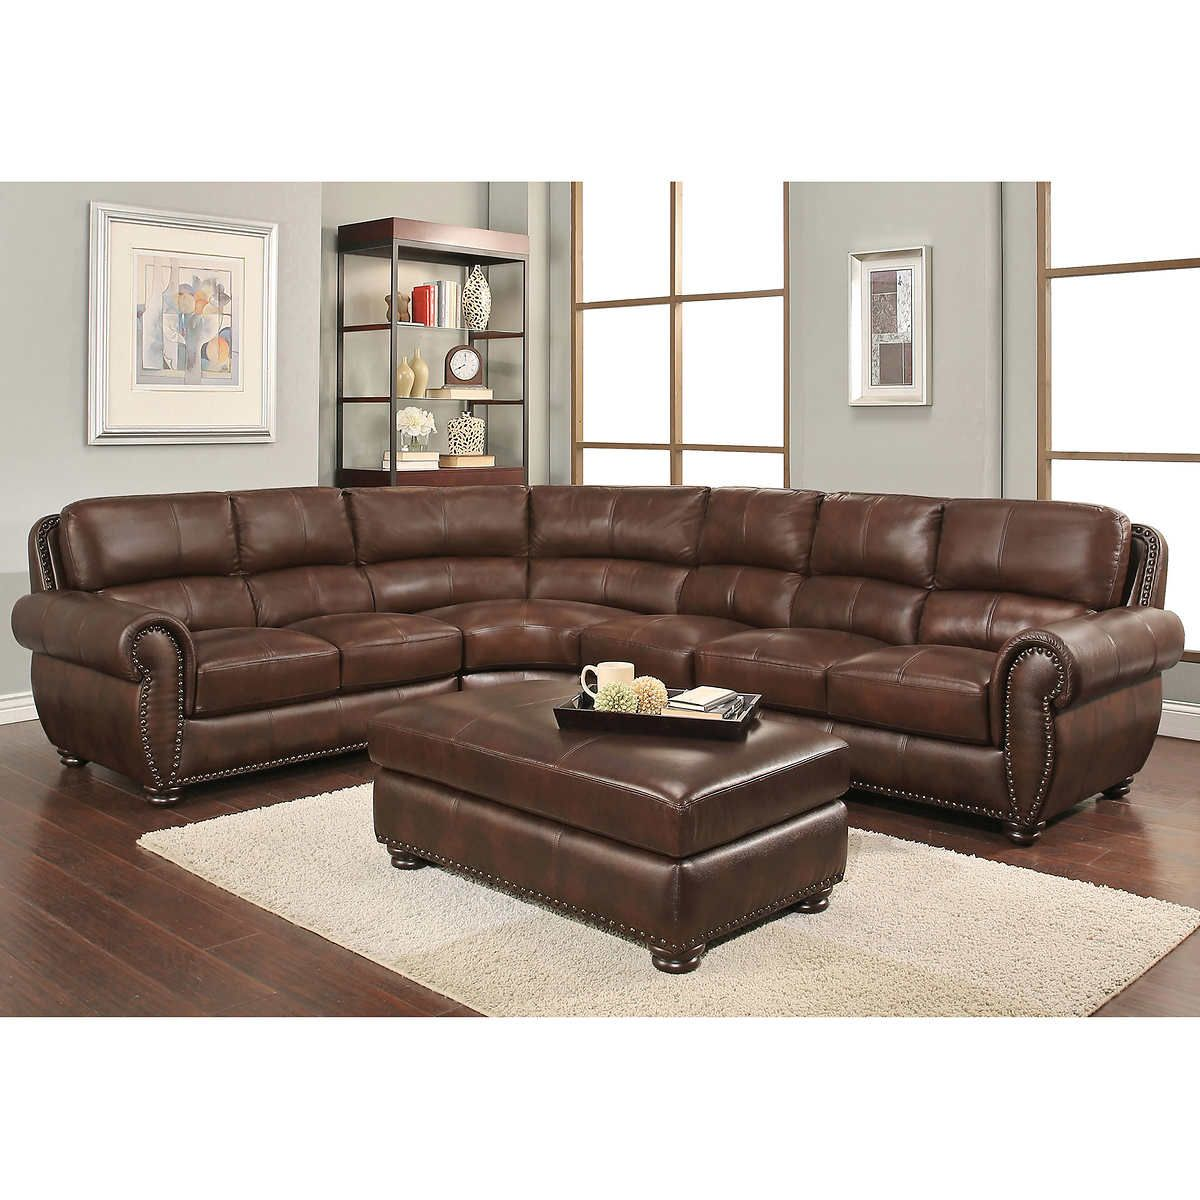 Austin Top Grain Leather Sectional With Ottoman Leather